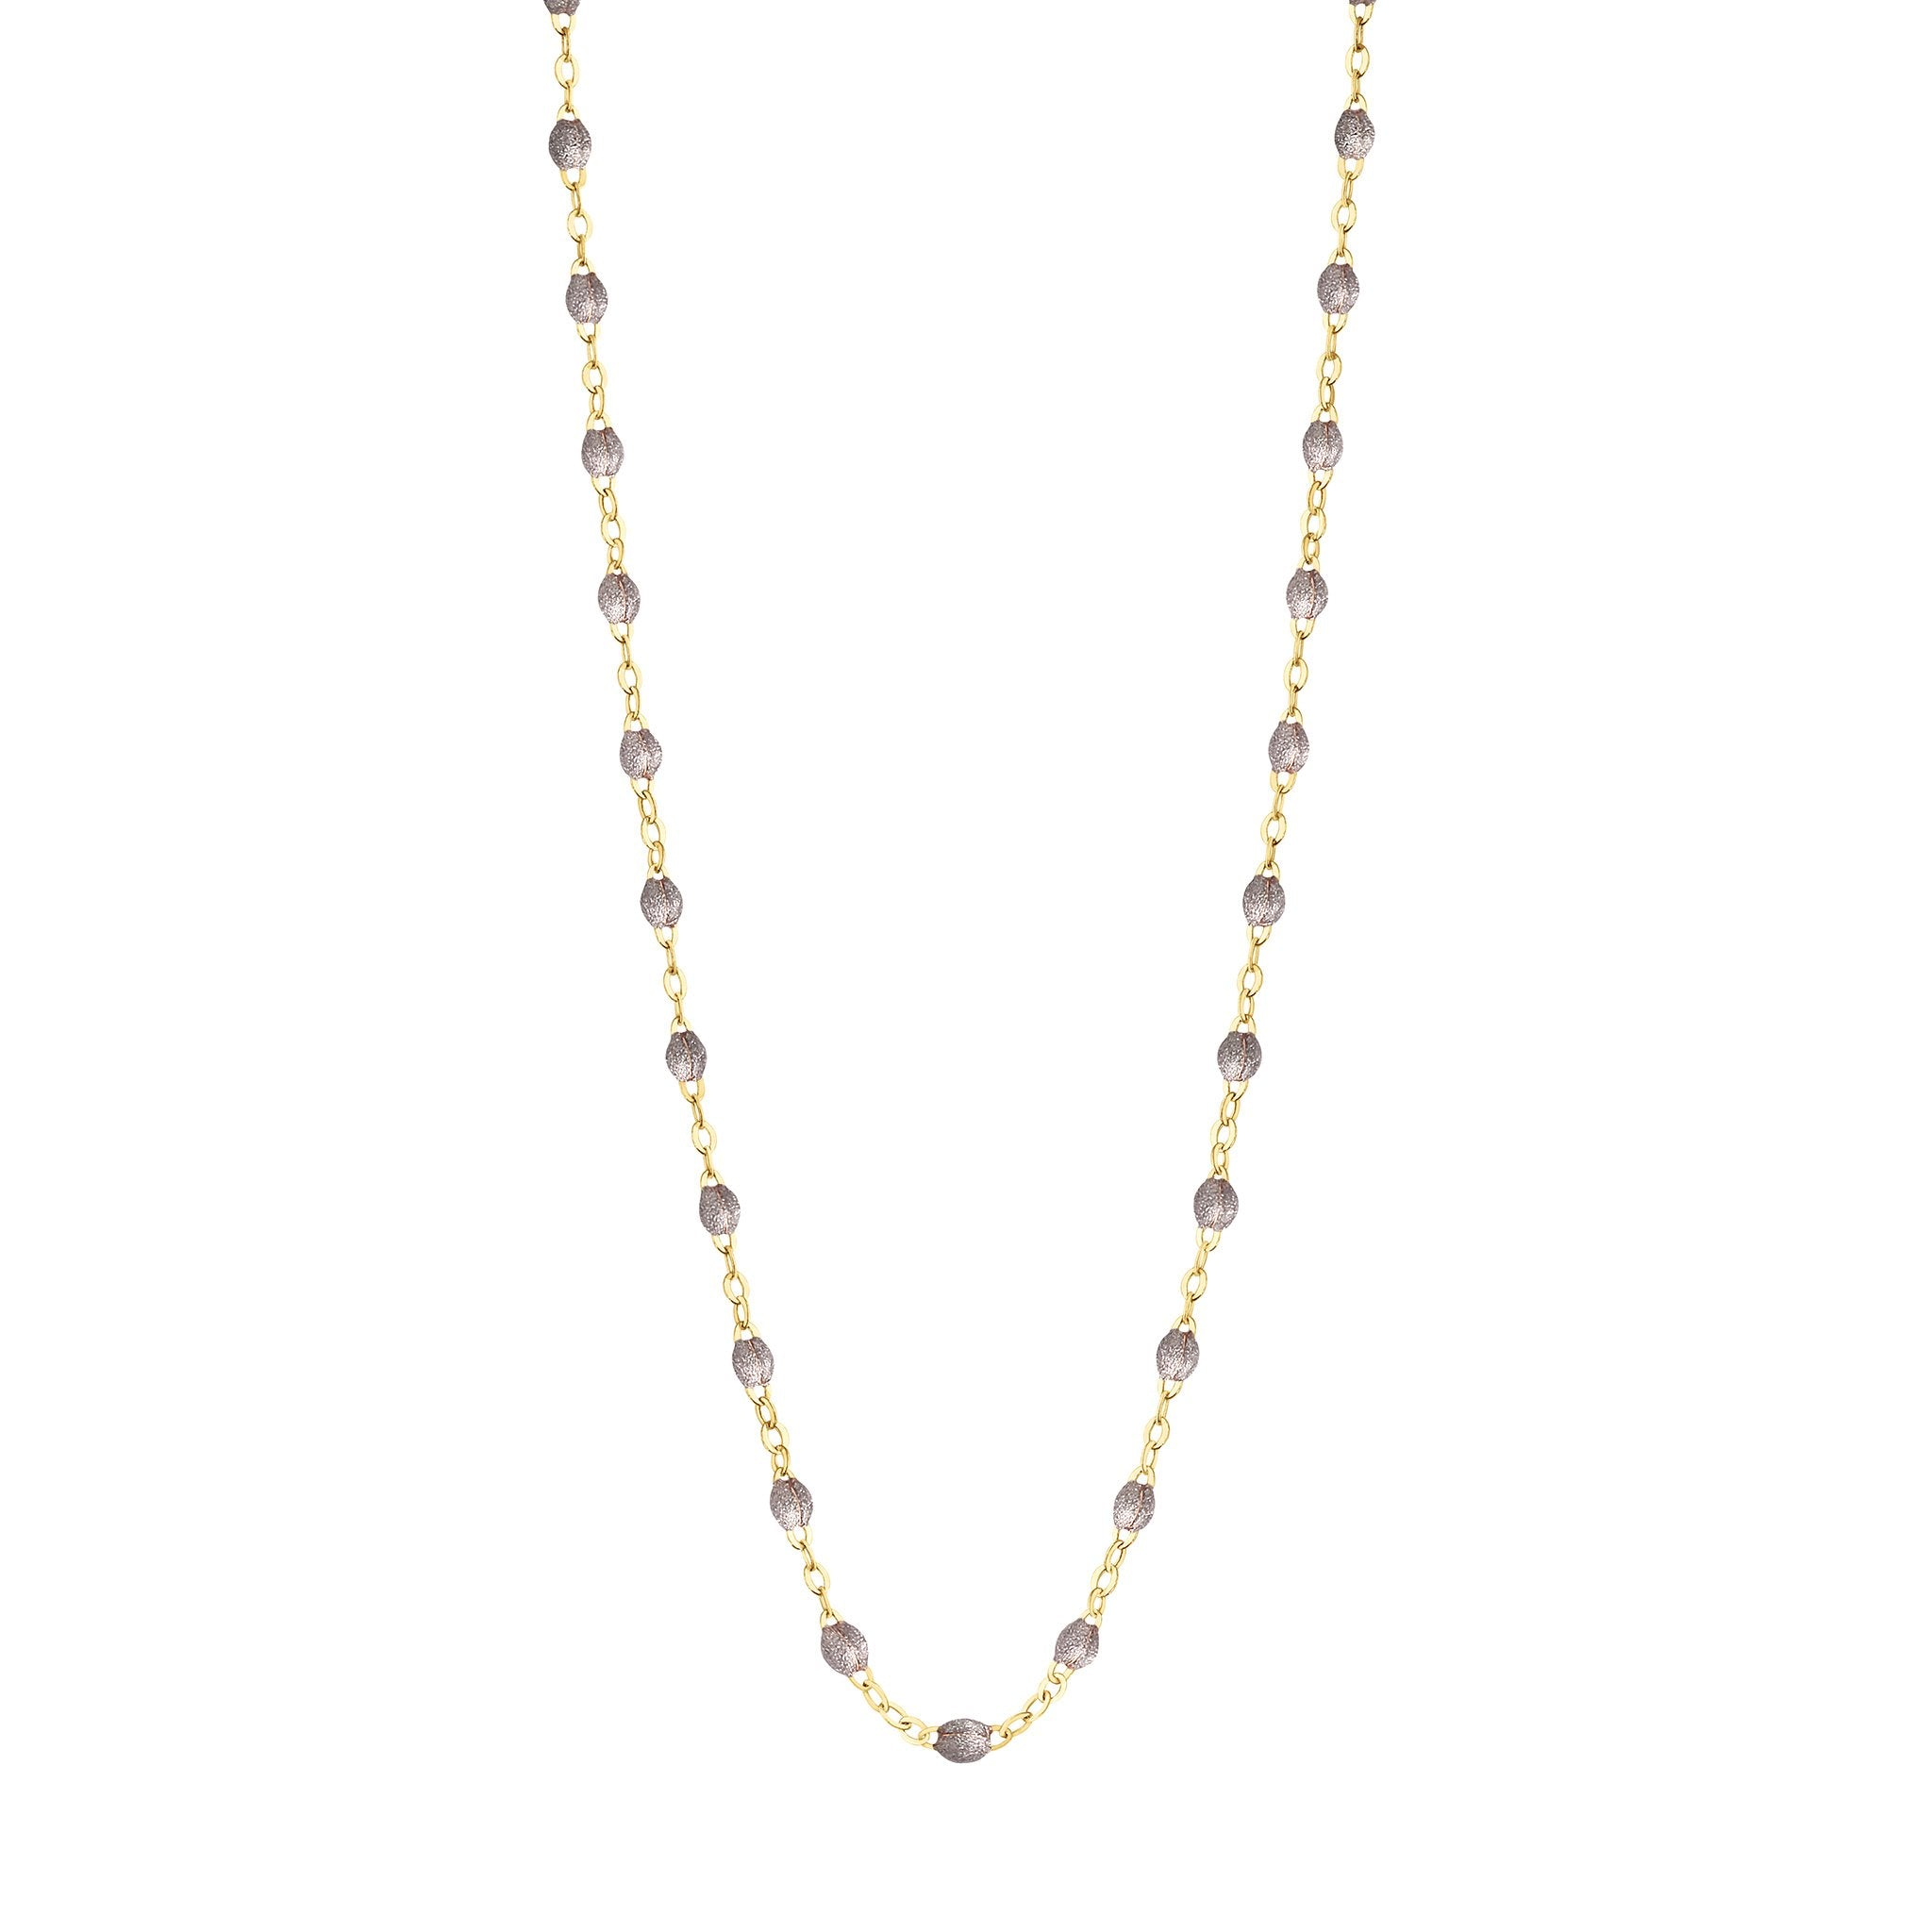 Gigi Clozeau - Classic Gigi Silver necklace, Yellow Gold, 17.7""